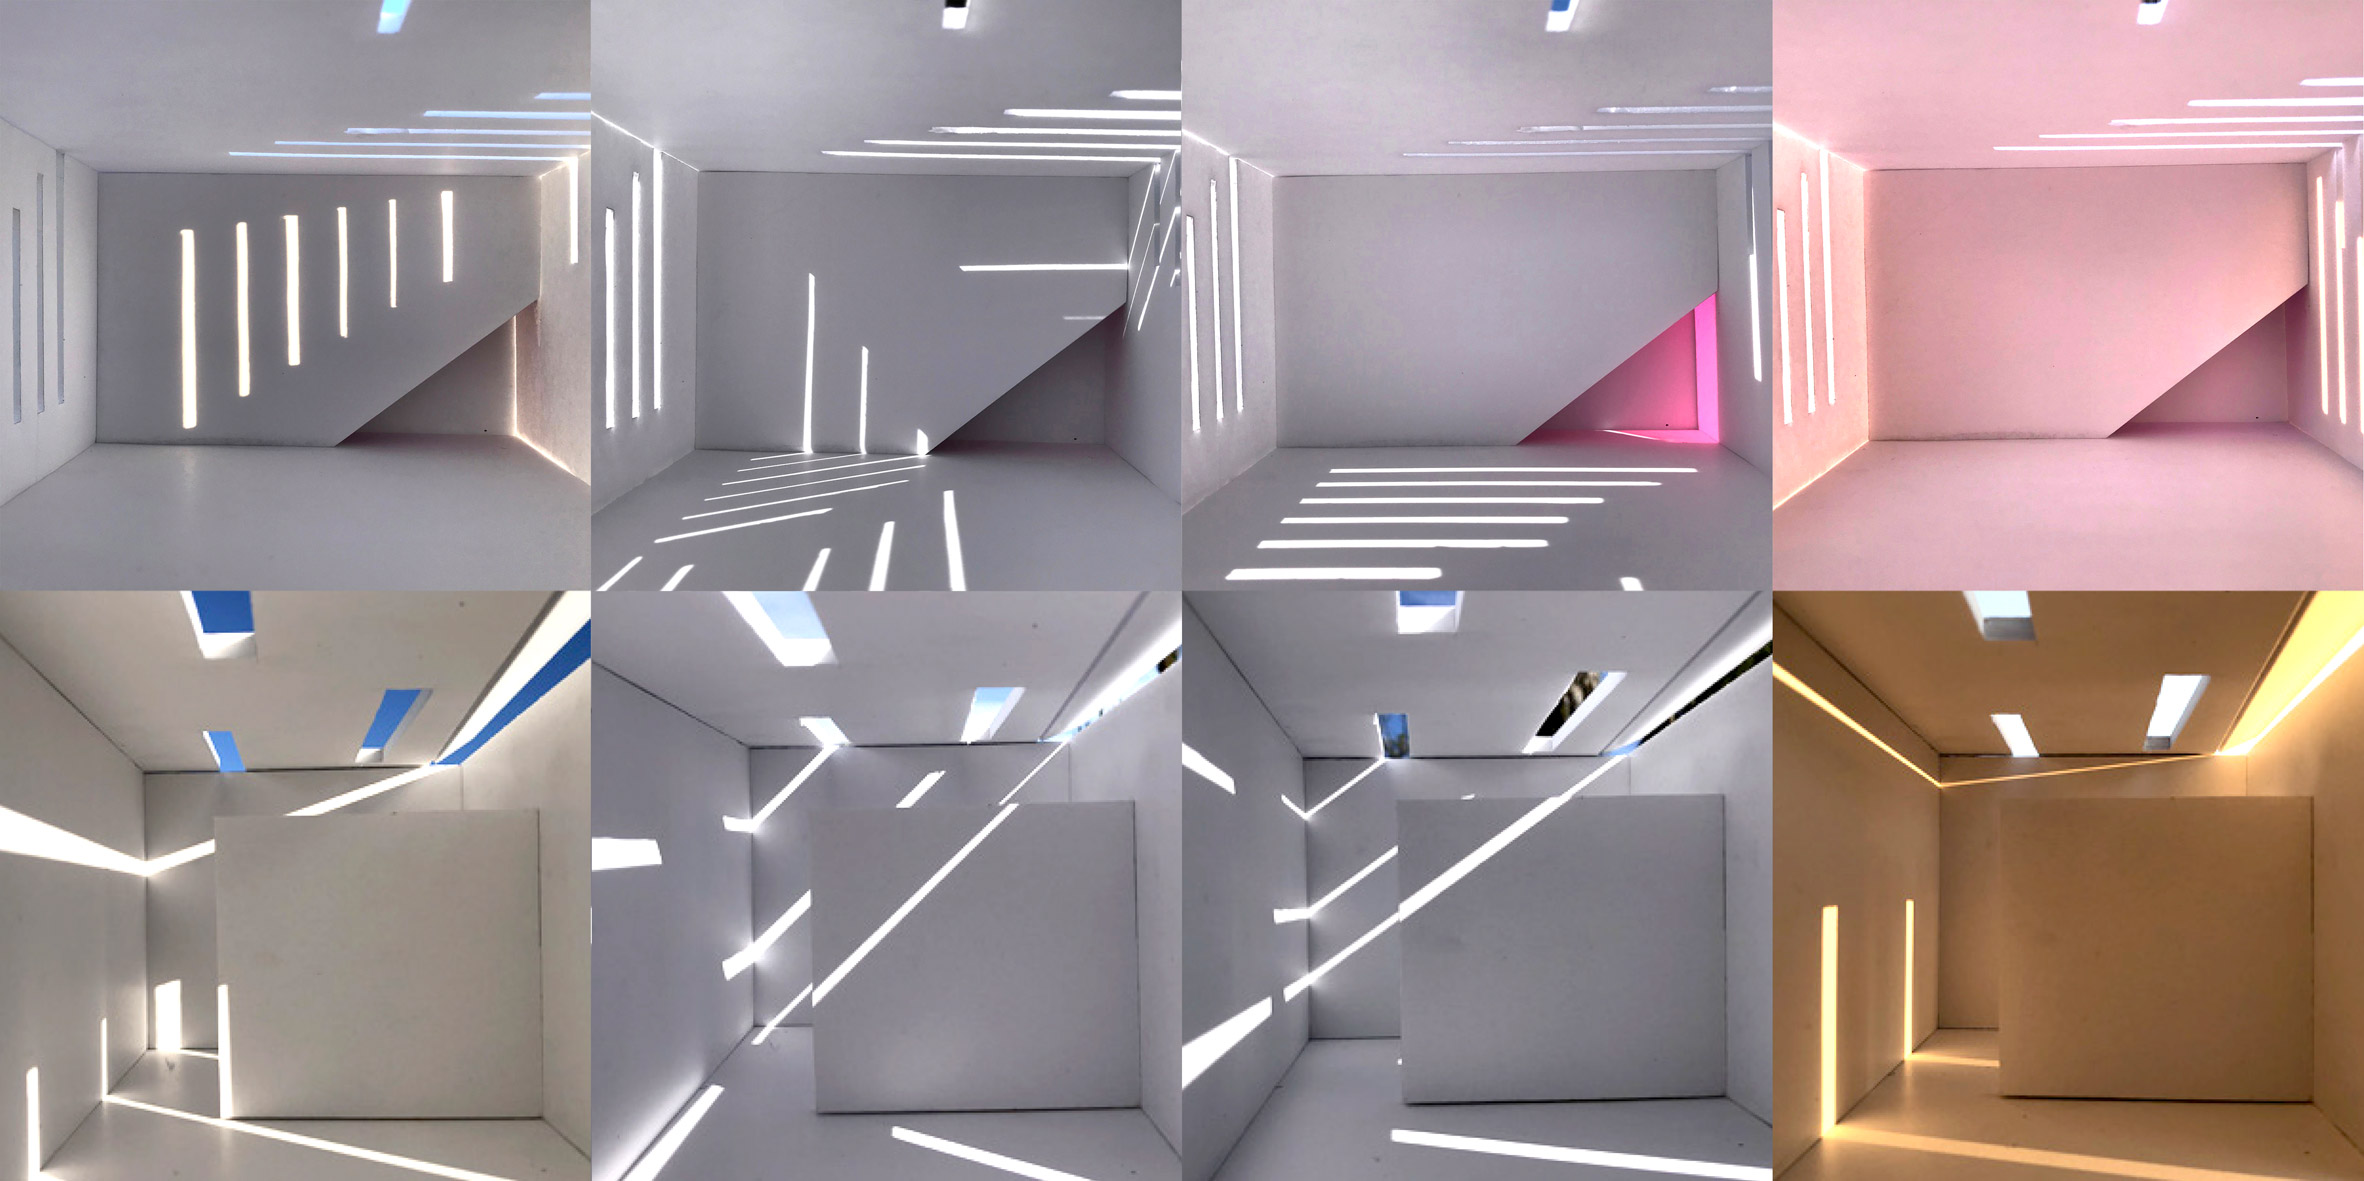 Chapel of Light Study by Jacob Arellano and Nicholas Andolino